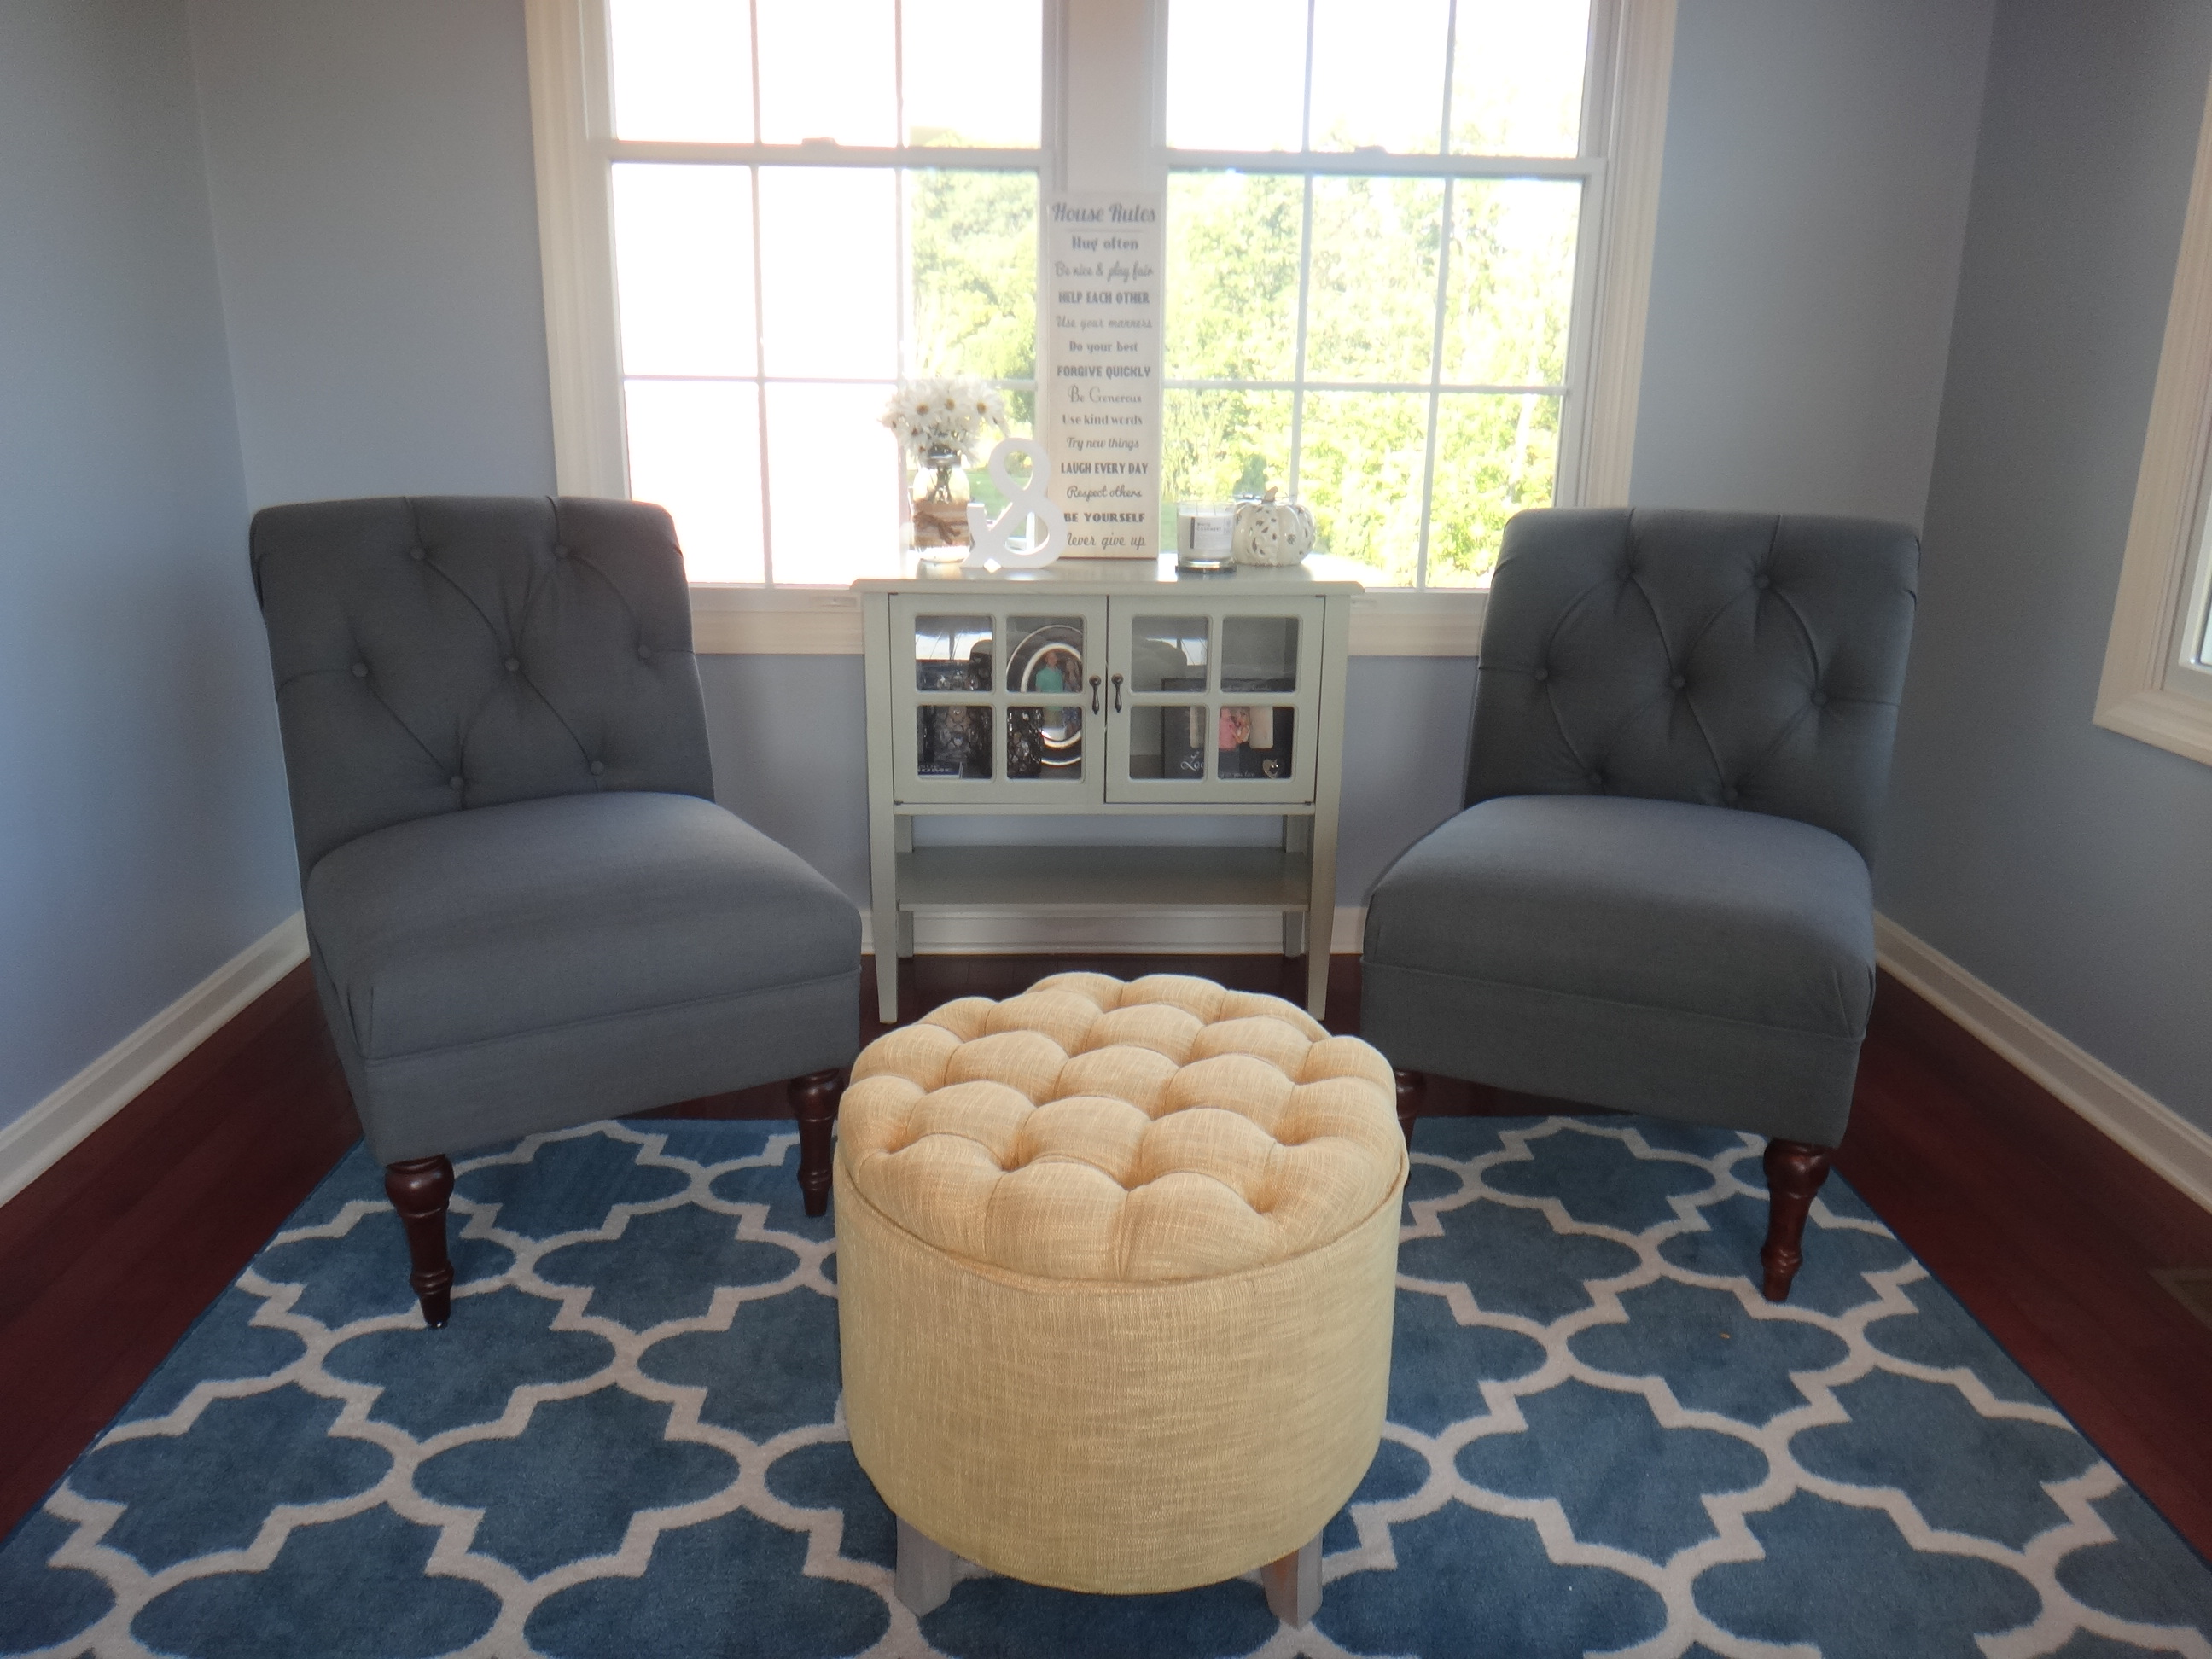 Its Important To Stay Flexible When Looking For Furniture I Originally Planned On Incorporating A Pattern With The Two Accent Chairs But Couldnt Find